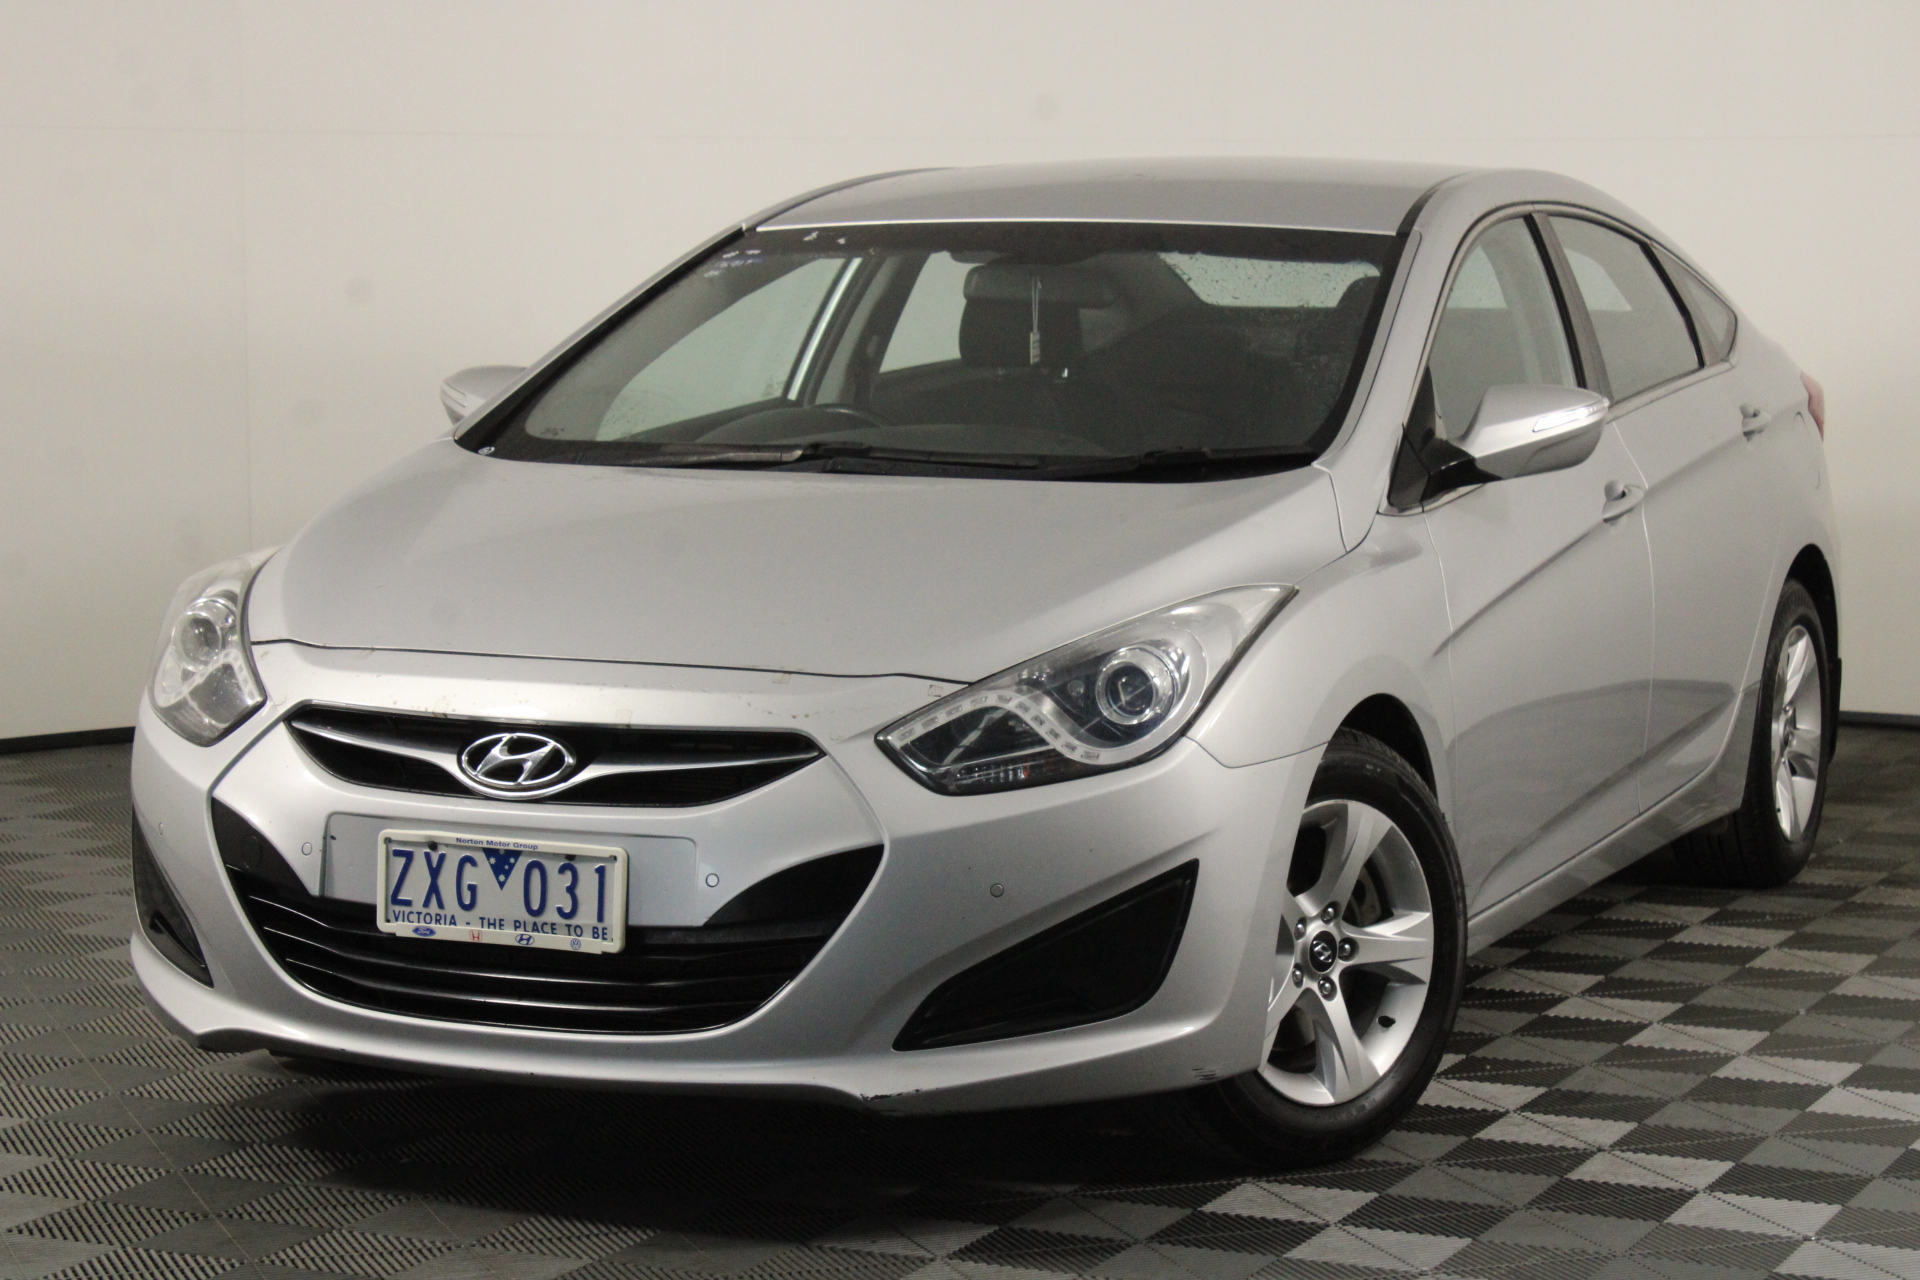 2013 Hyundai i40 Active VF Automatic Sedan